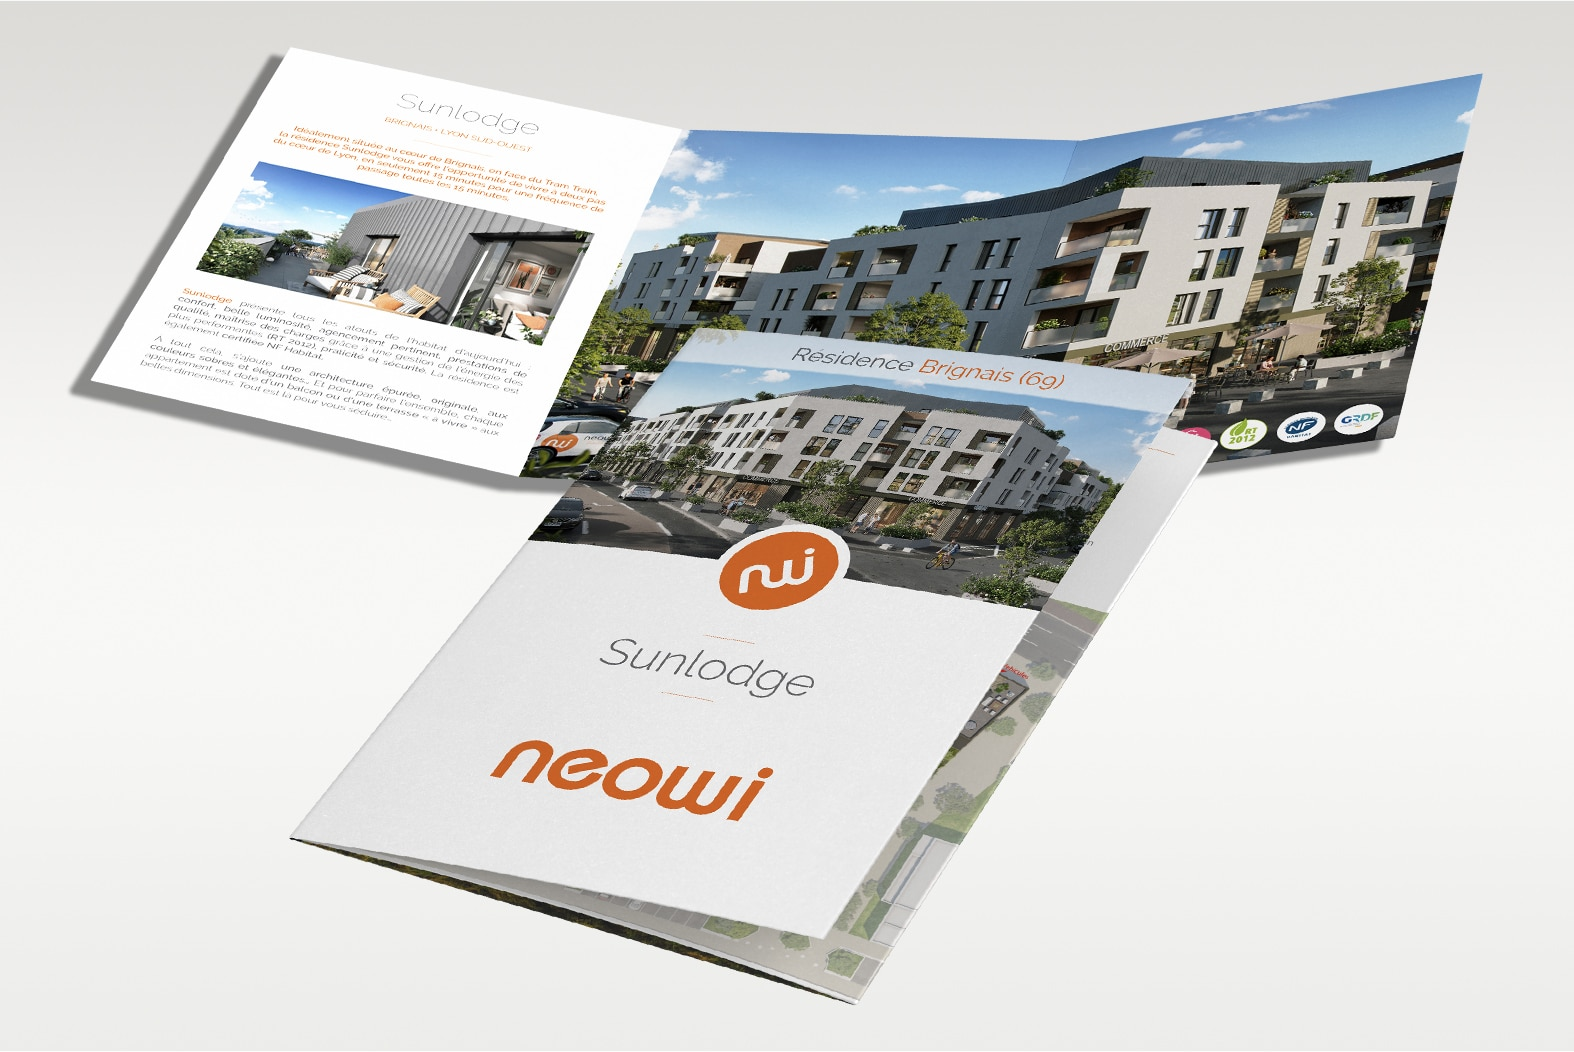 Sunlodge | Neowi Immobilier